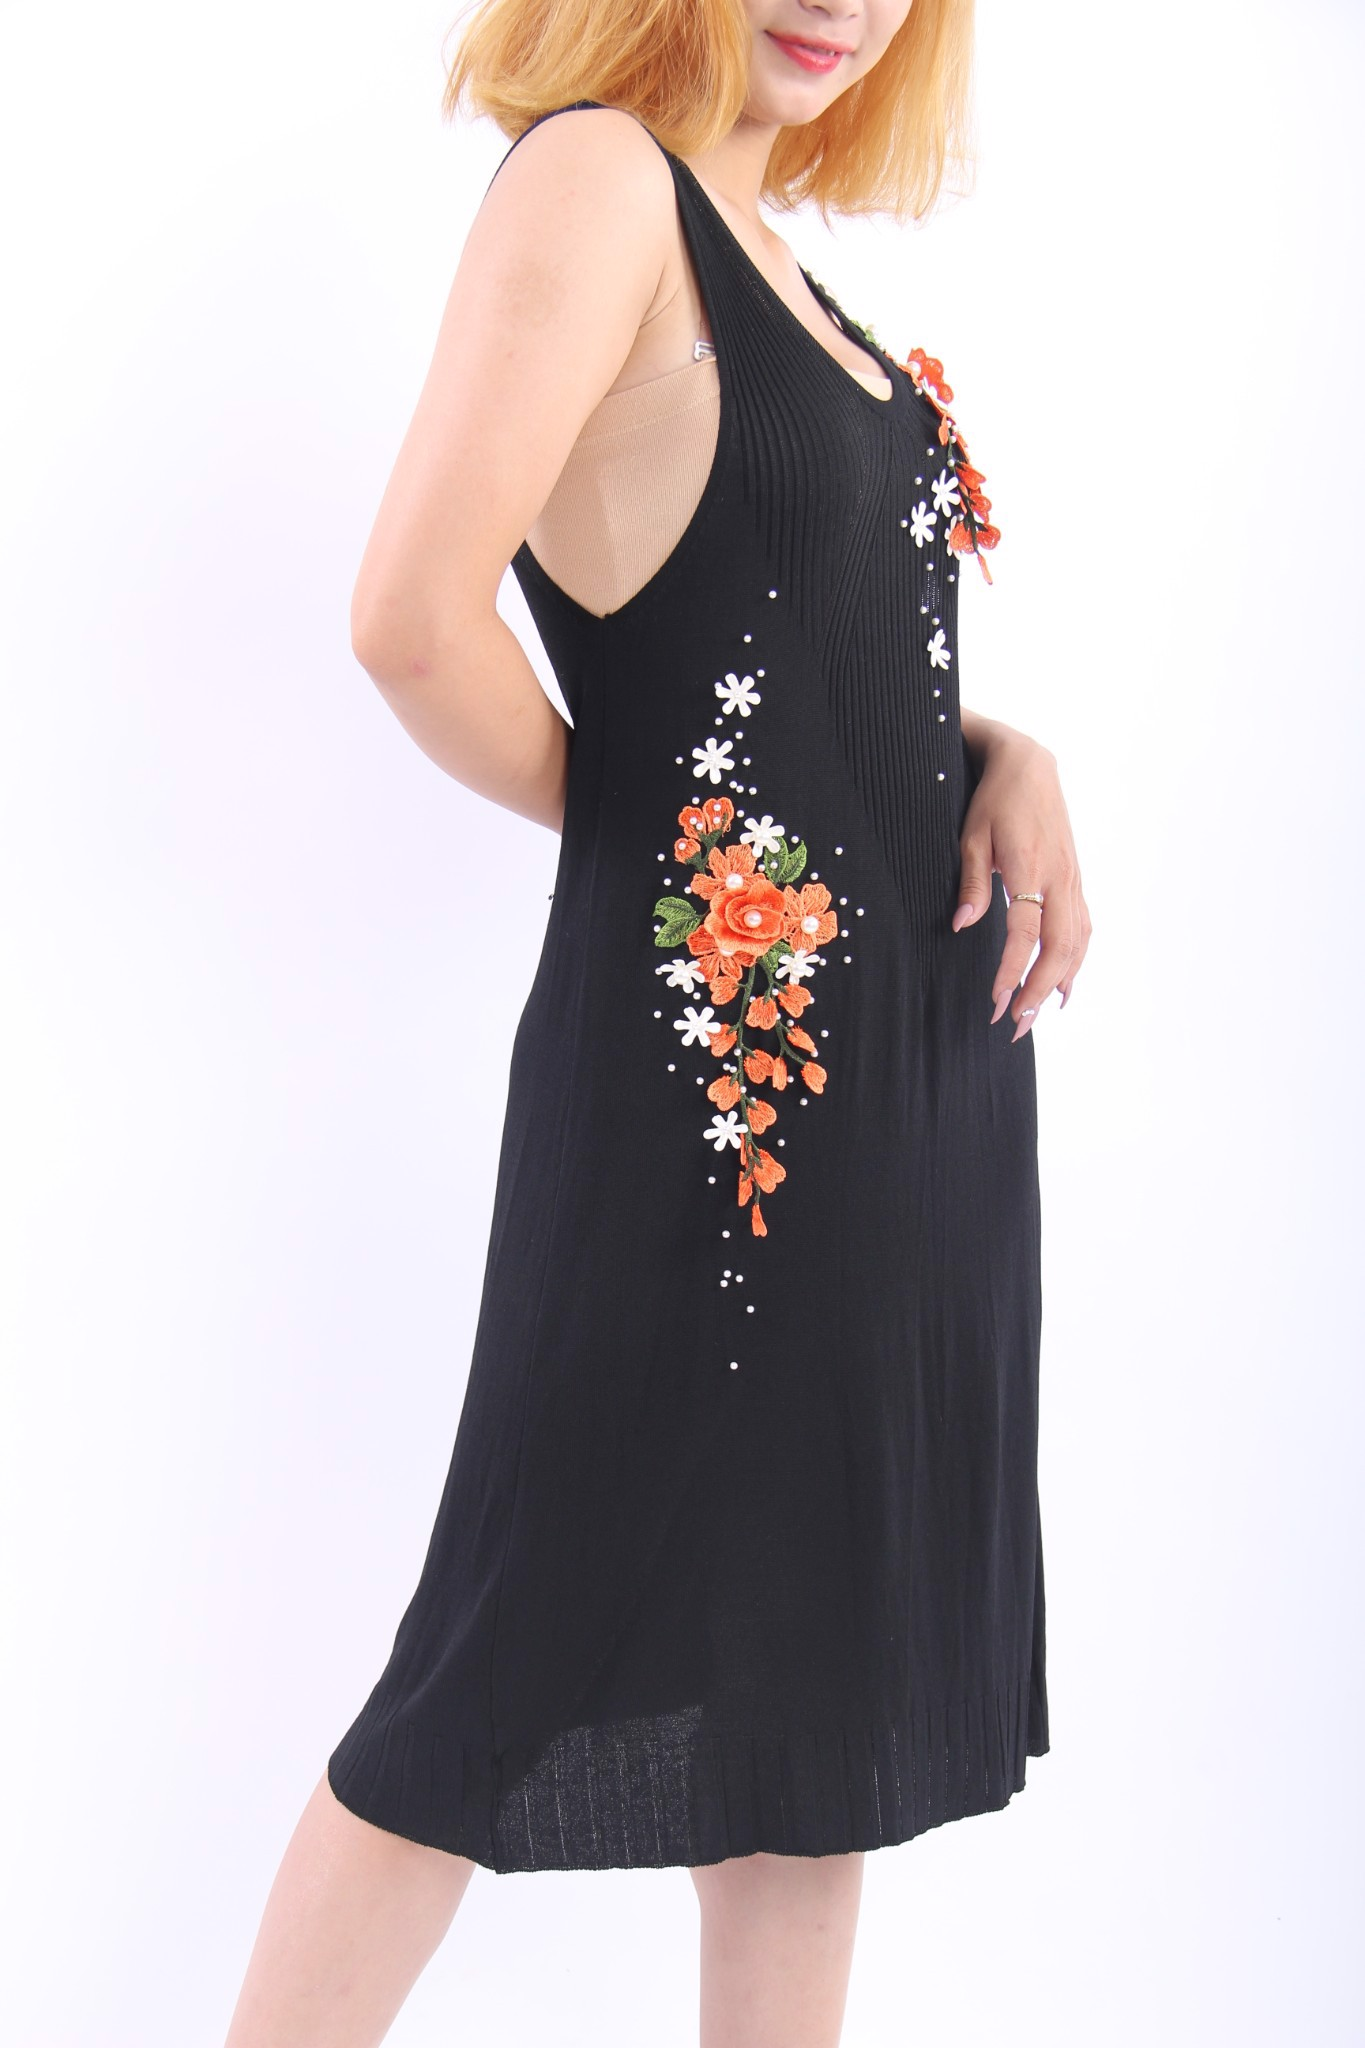 3D flowers black pinaforce dress